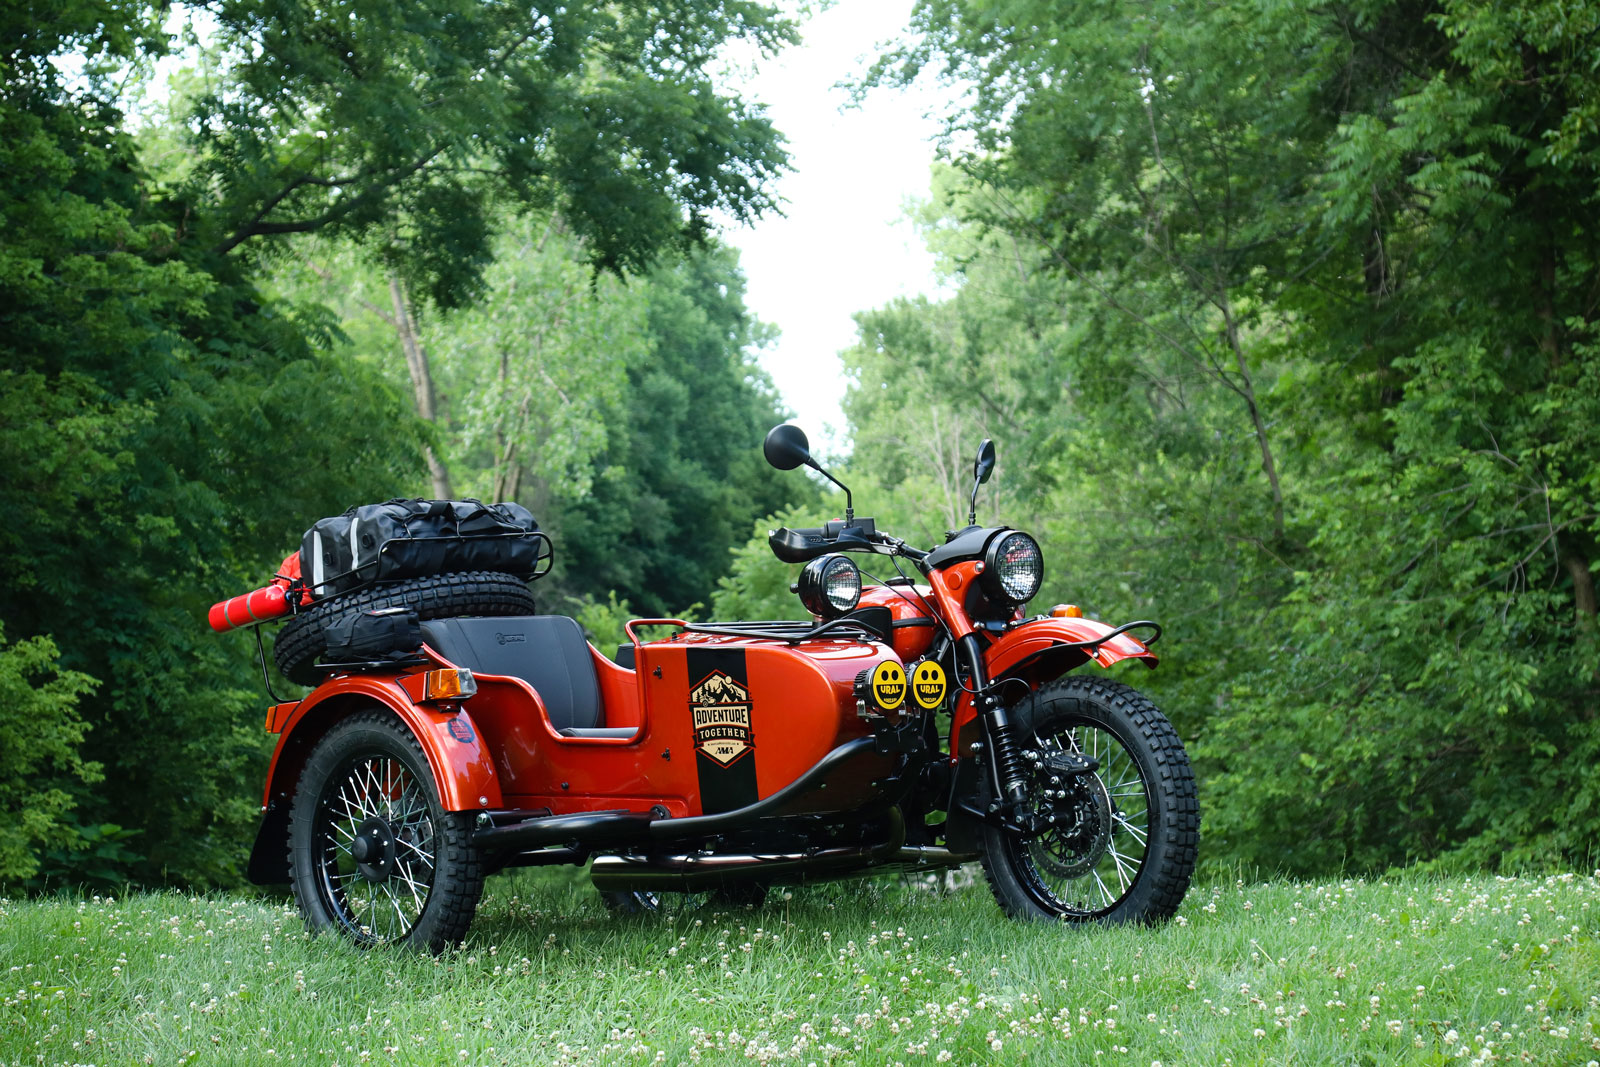 ama raffle bike ural sidecar motorcycle good spark garage. Black Bedroom Furniture Sets. Home Design Ideas